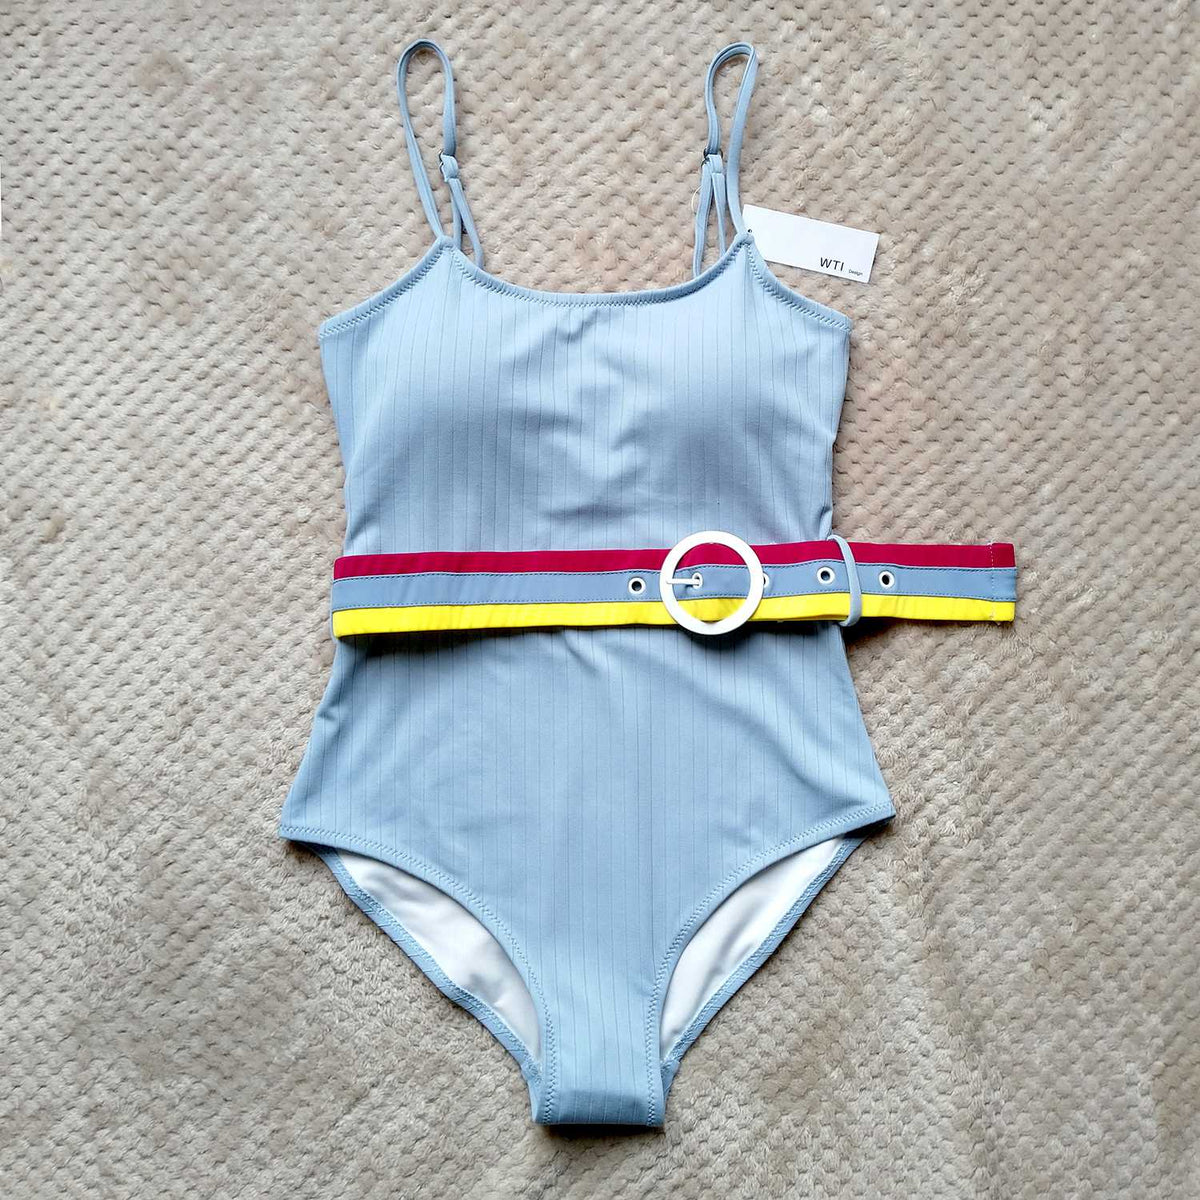 Ribbed High Cut One Piece Womens Monokini Bikini Swimsuits with Multicolored Stripe Belt - worthtryit.com